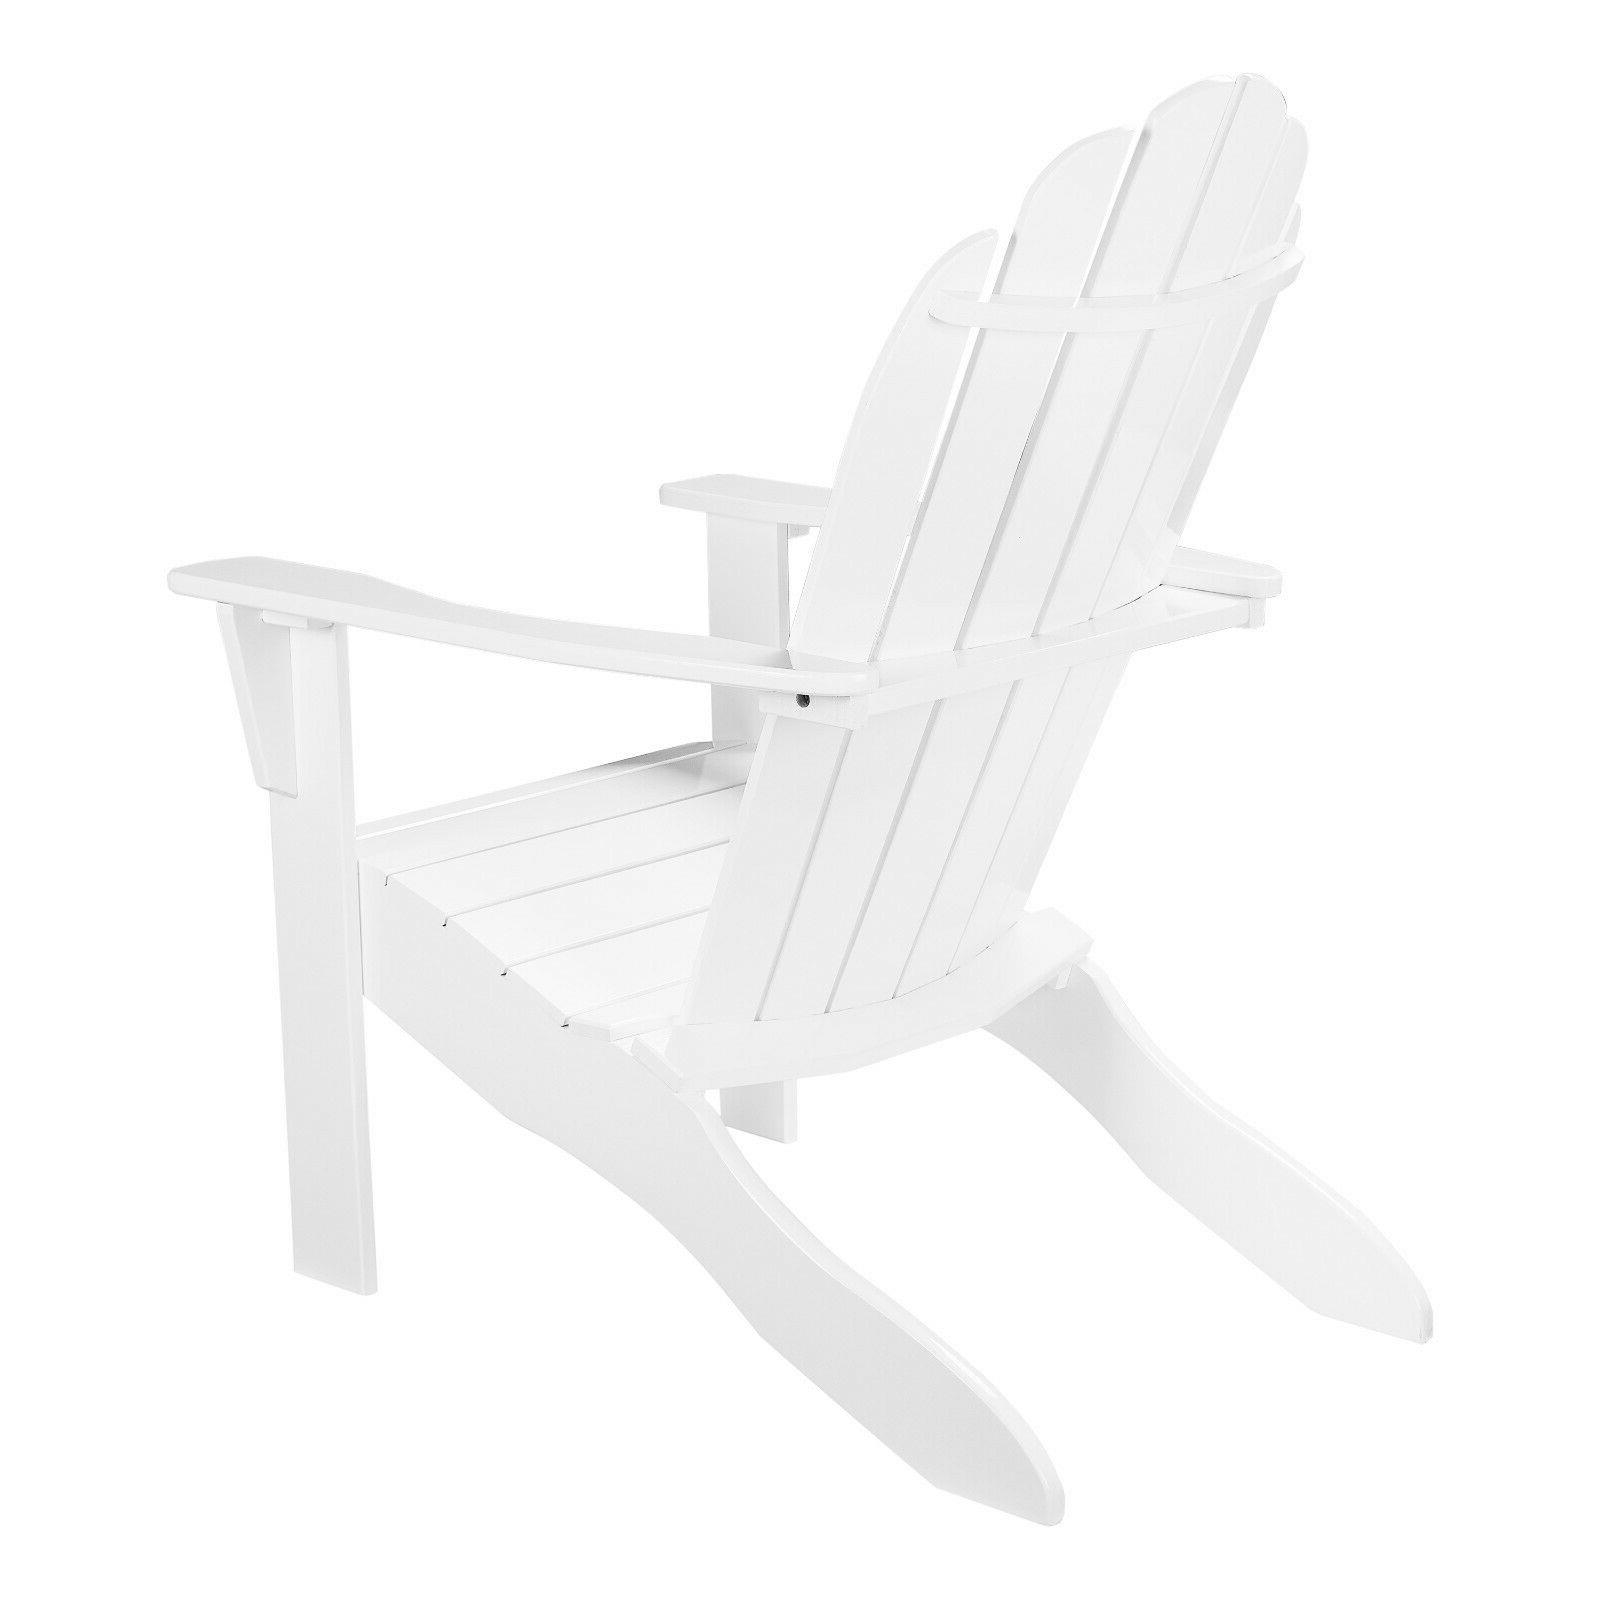 Mainstays Outdoor Chair, White High-Quality